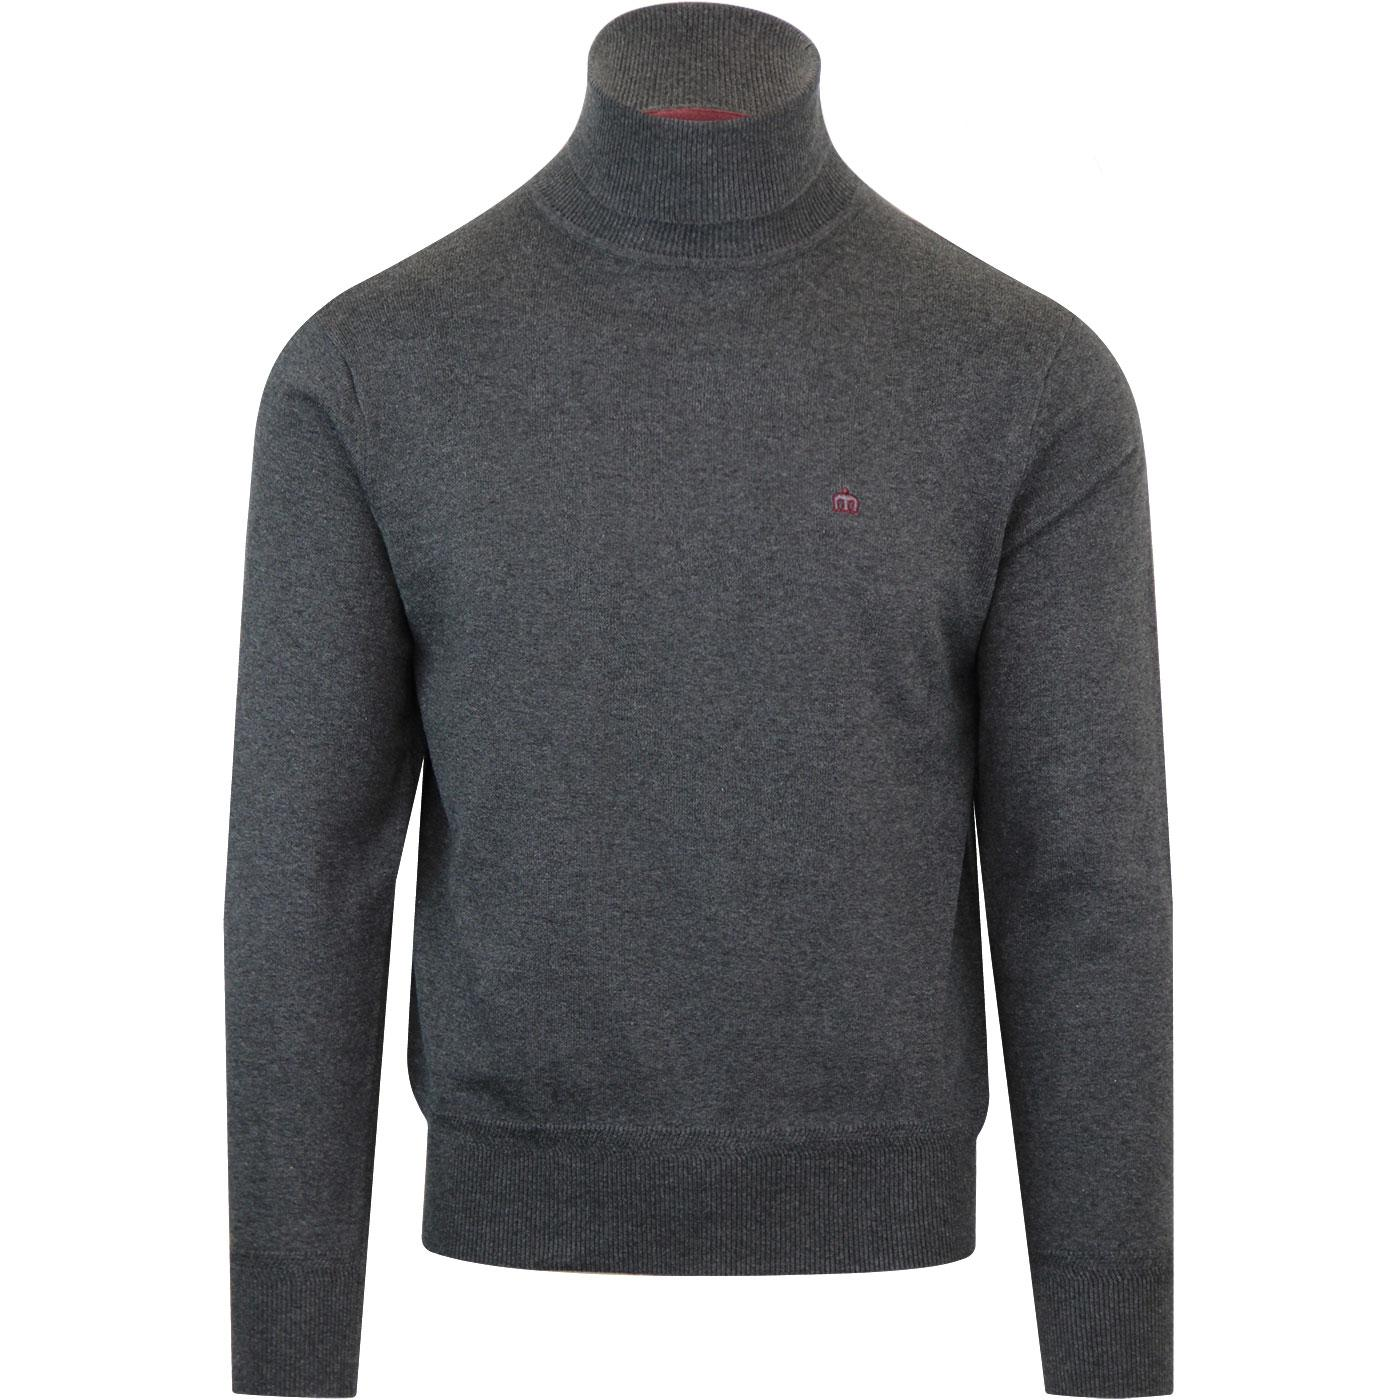 Wapping MERC 1960s Mod Roll Neck Jumper (Charcoal)